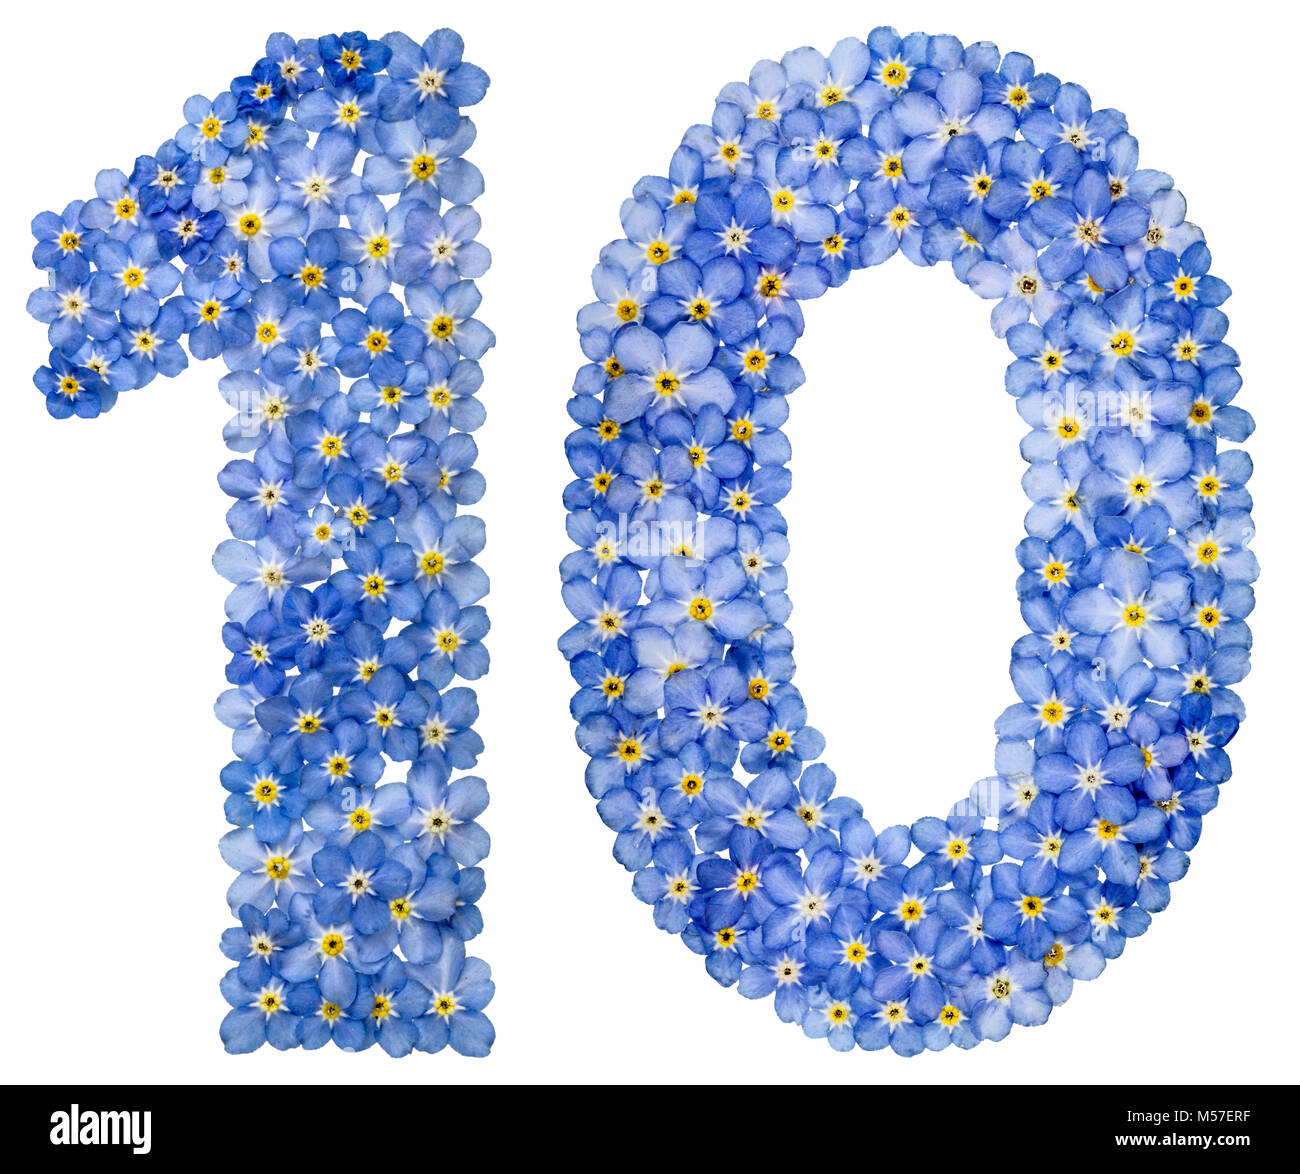 Arabic numeral 10, ten, from blue forget-me-not flowers - Stock Image